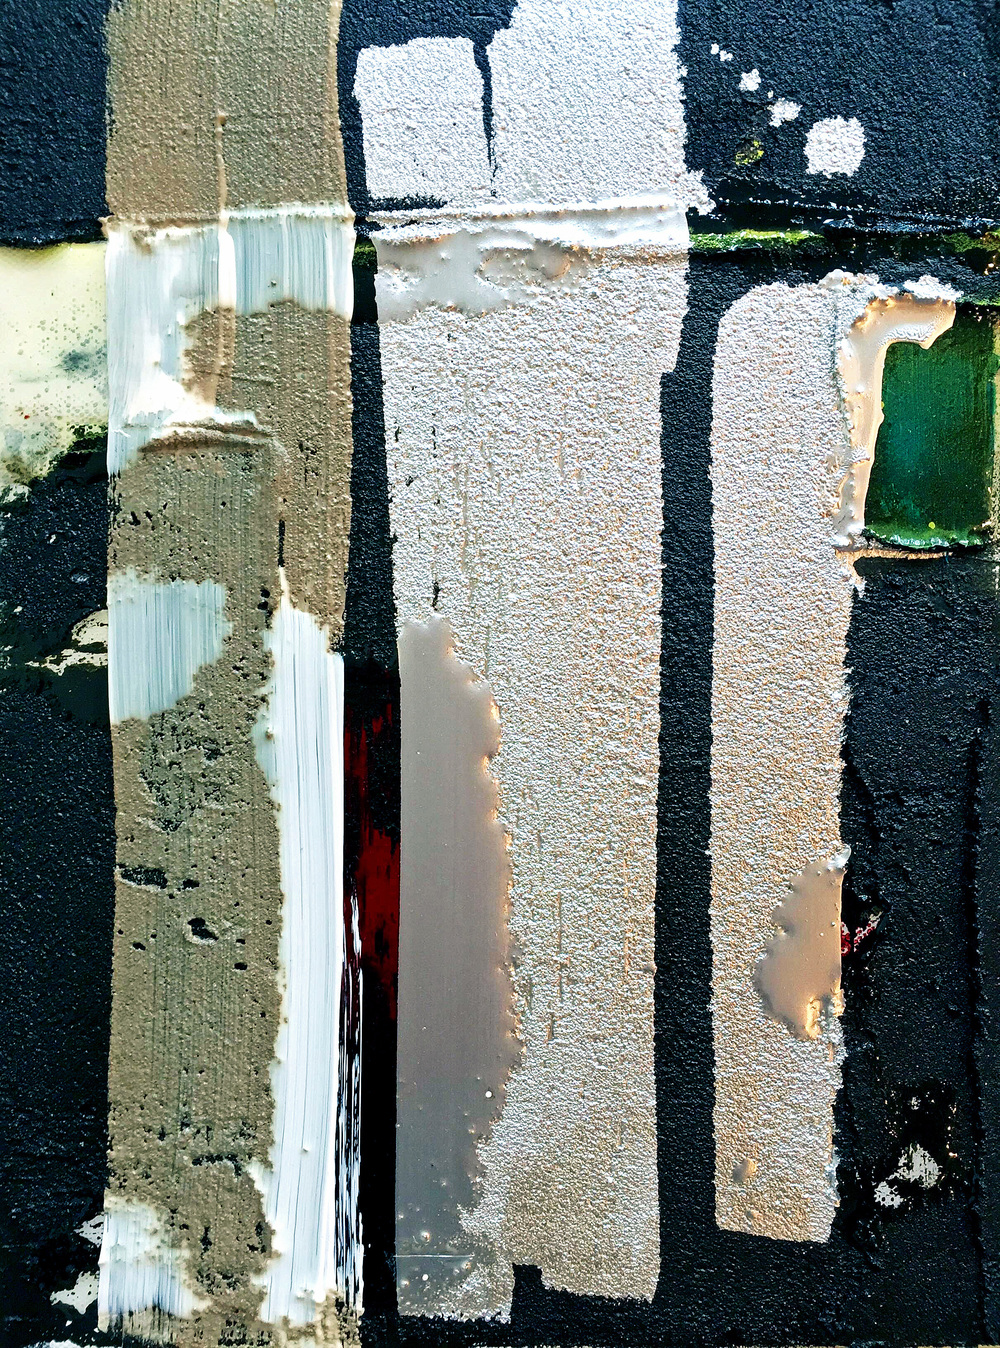 Mixed Media / Divergence XXXI / Oil, aluminum paint, asphalt, resin on canvas / 11 x 14 inches